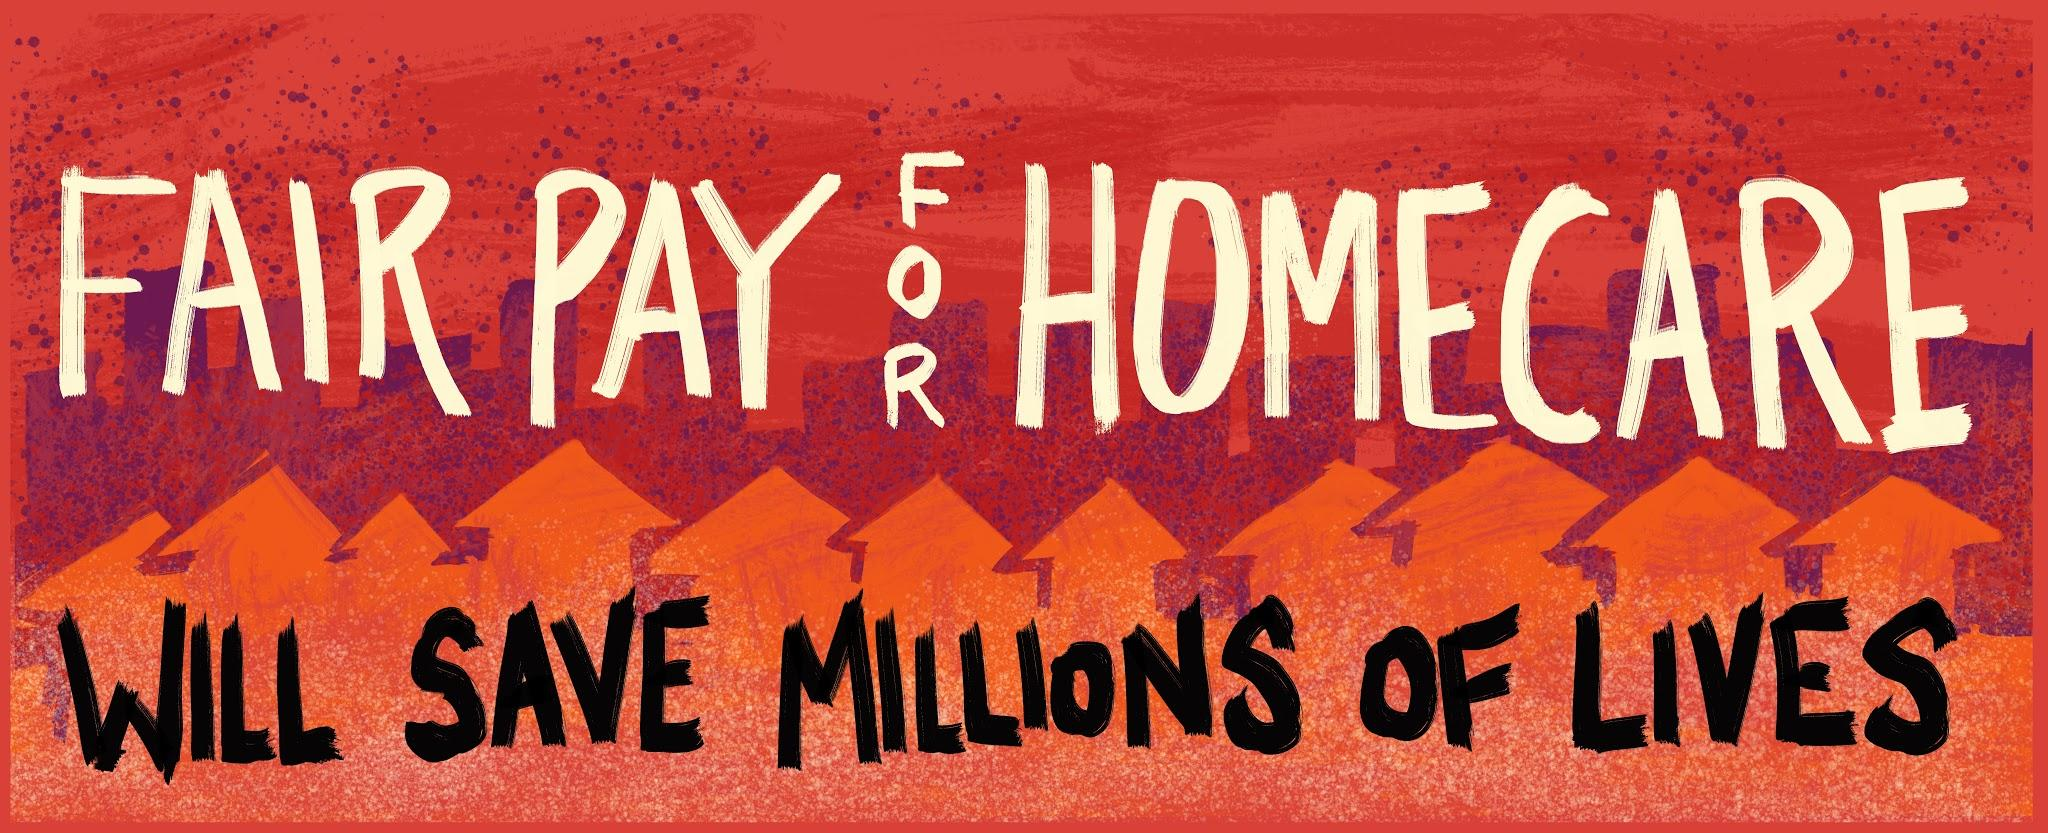 Red banner with text: Fair Pay for Home Care Will Save Millions of Lives